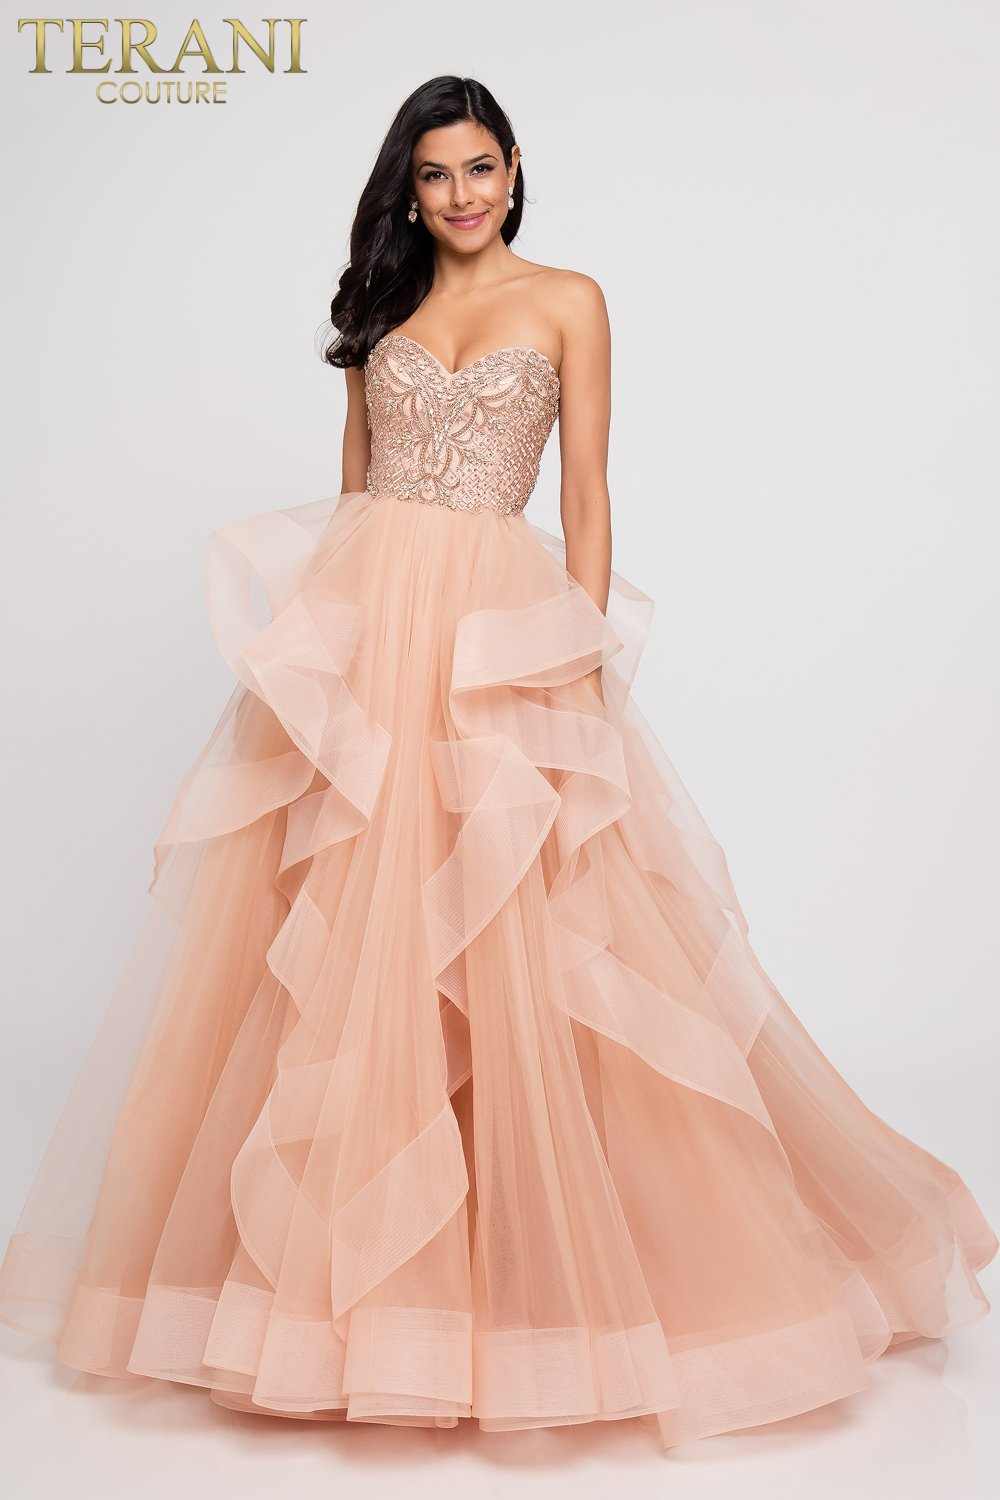 Princess Beaded Bodice Strapless Prom Ball Gown 1811p5731